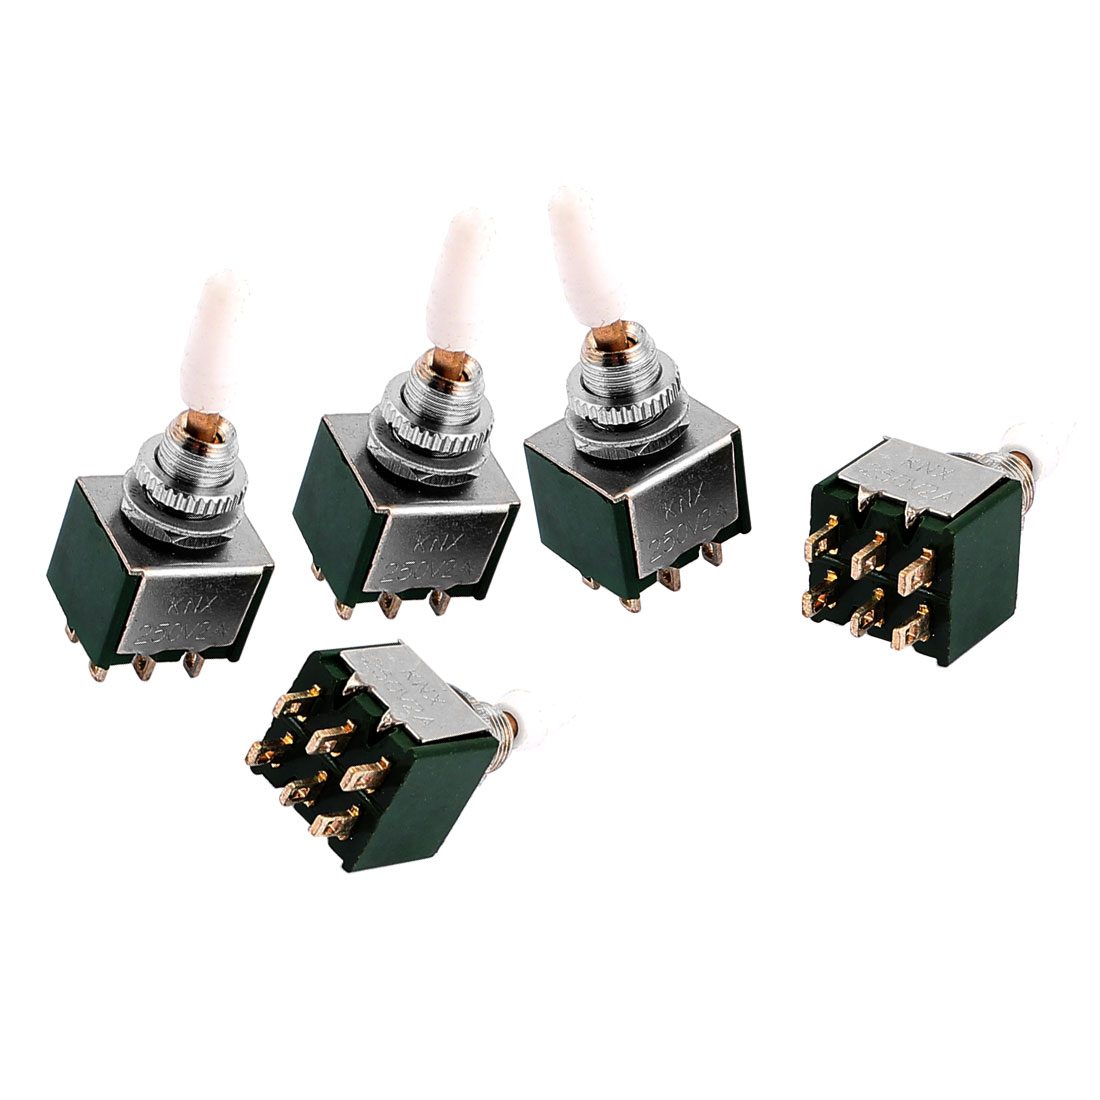 5 Pcs AC 250V 2A DPDT ON/ON 6 Terminals 2 Position Green Toggle Switches